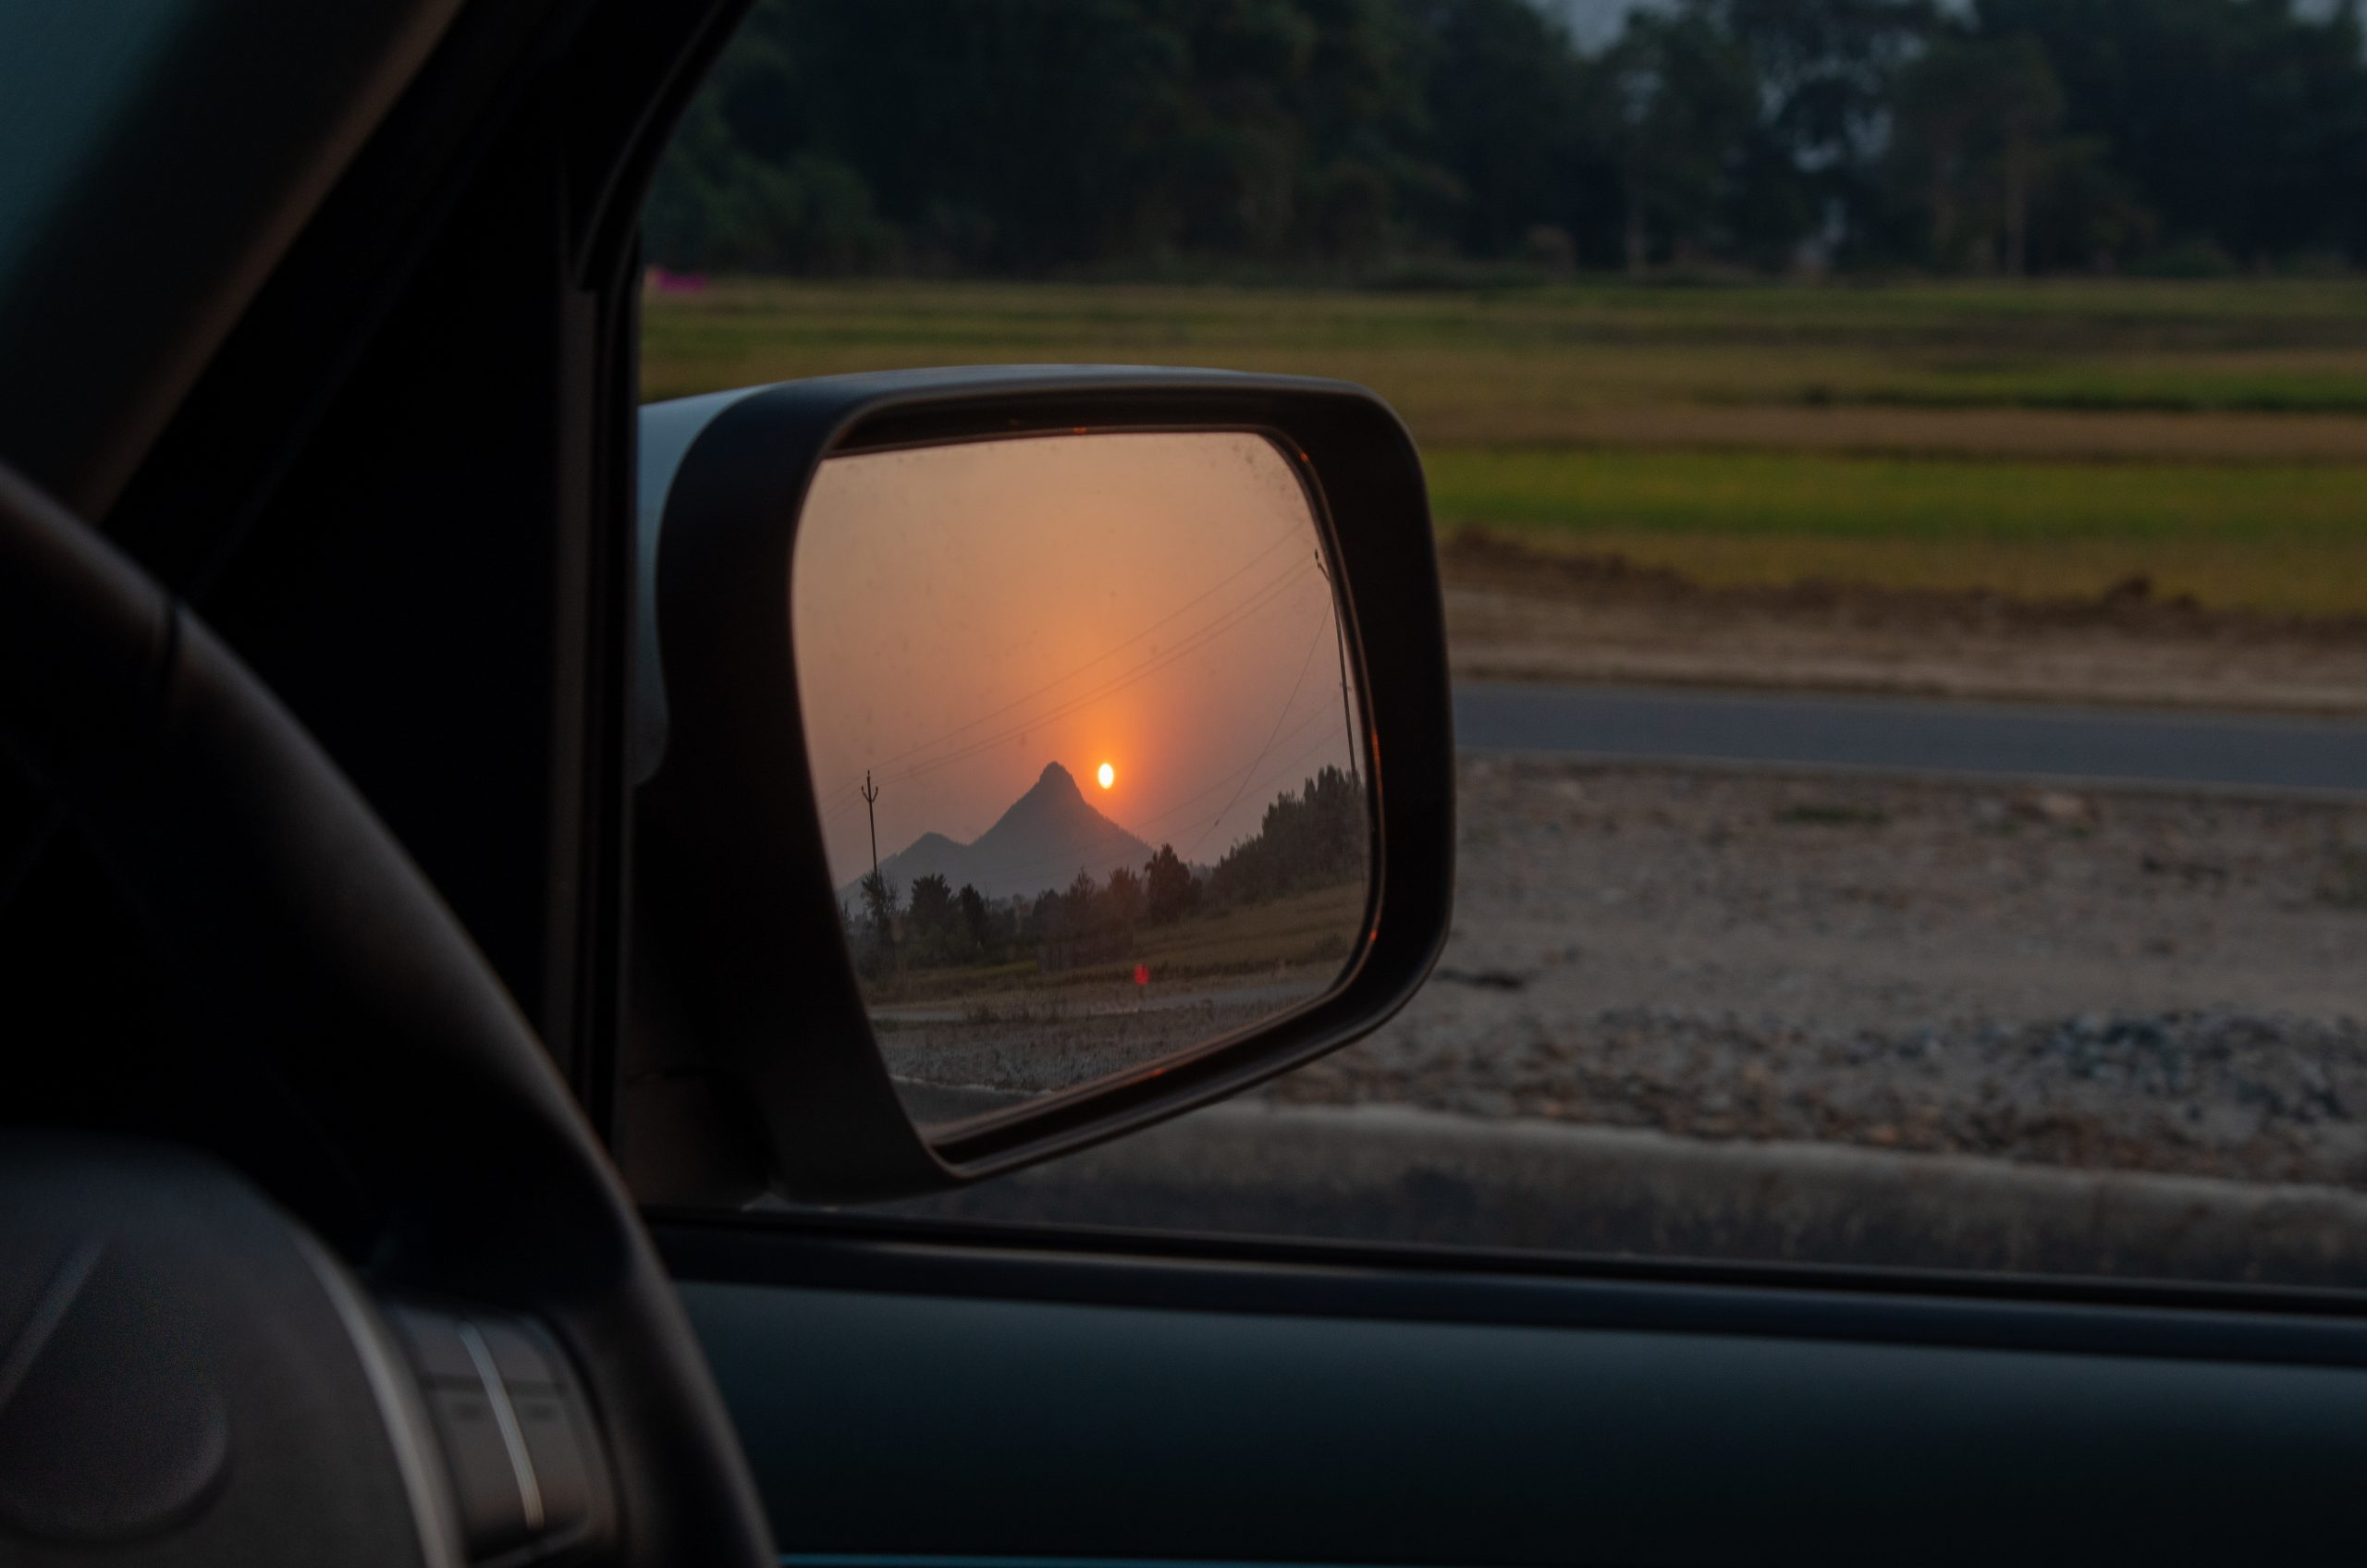 Rearview mirror of a car